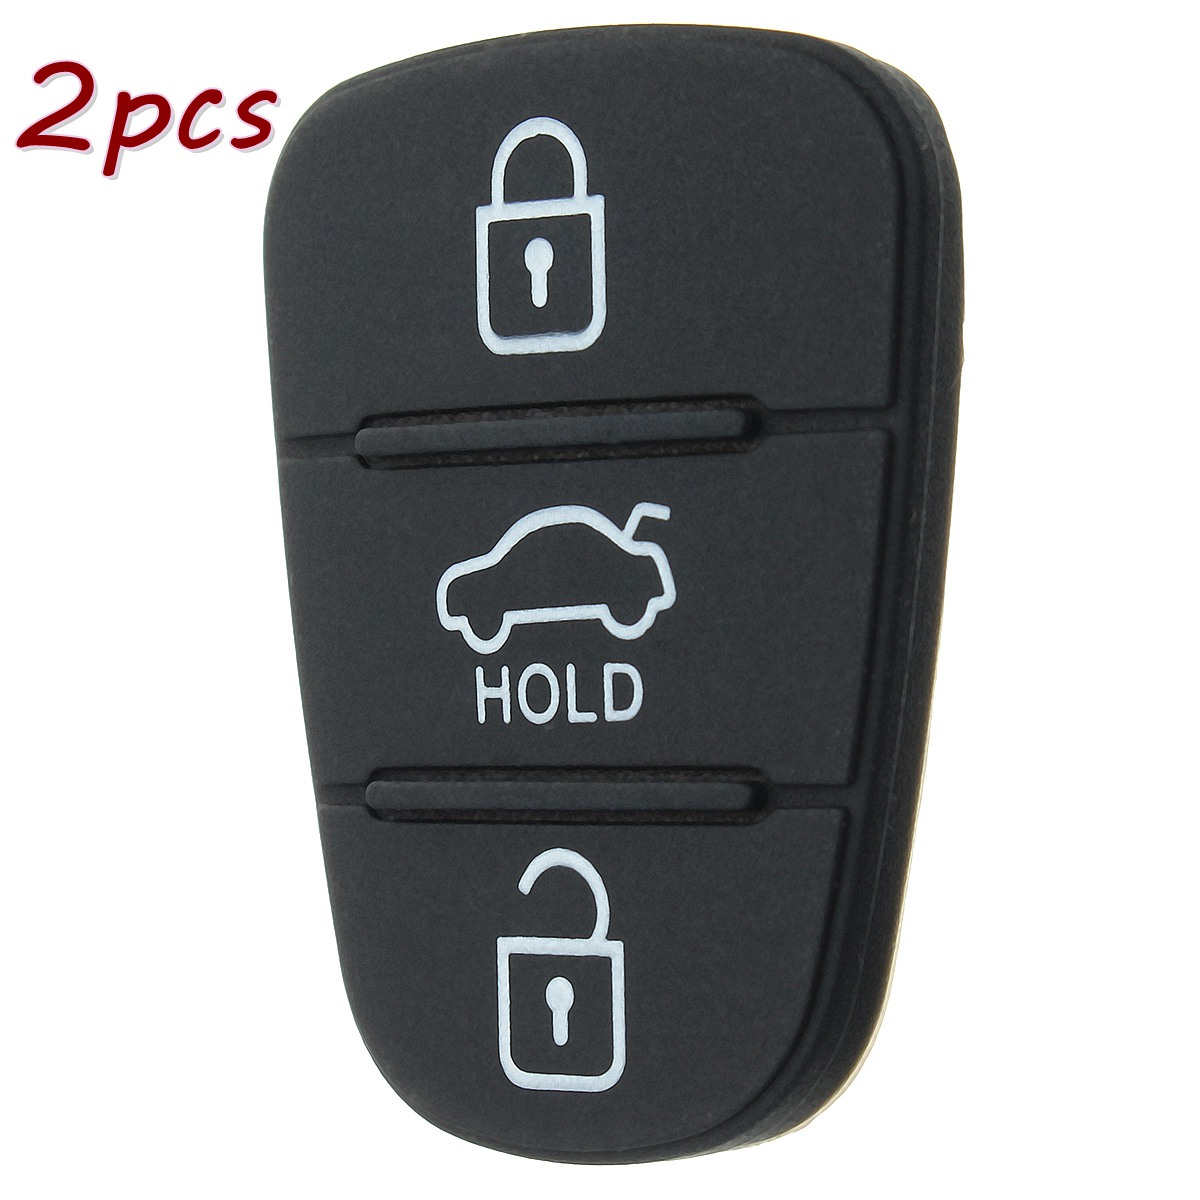 2pcs Rubber Key Button Pad For Hyundai Solaris Accent